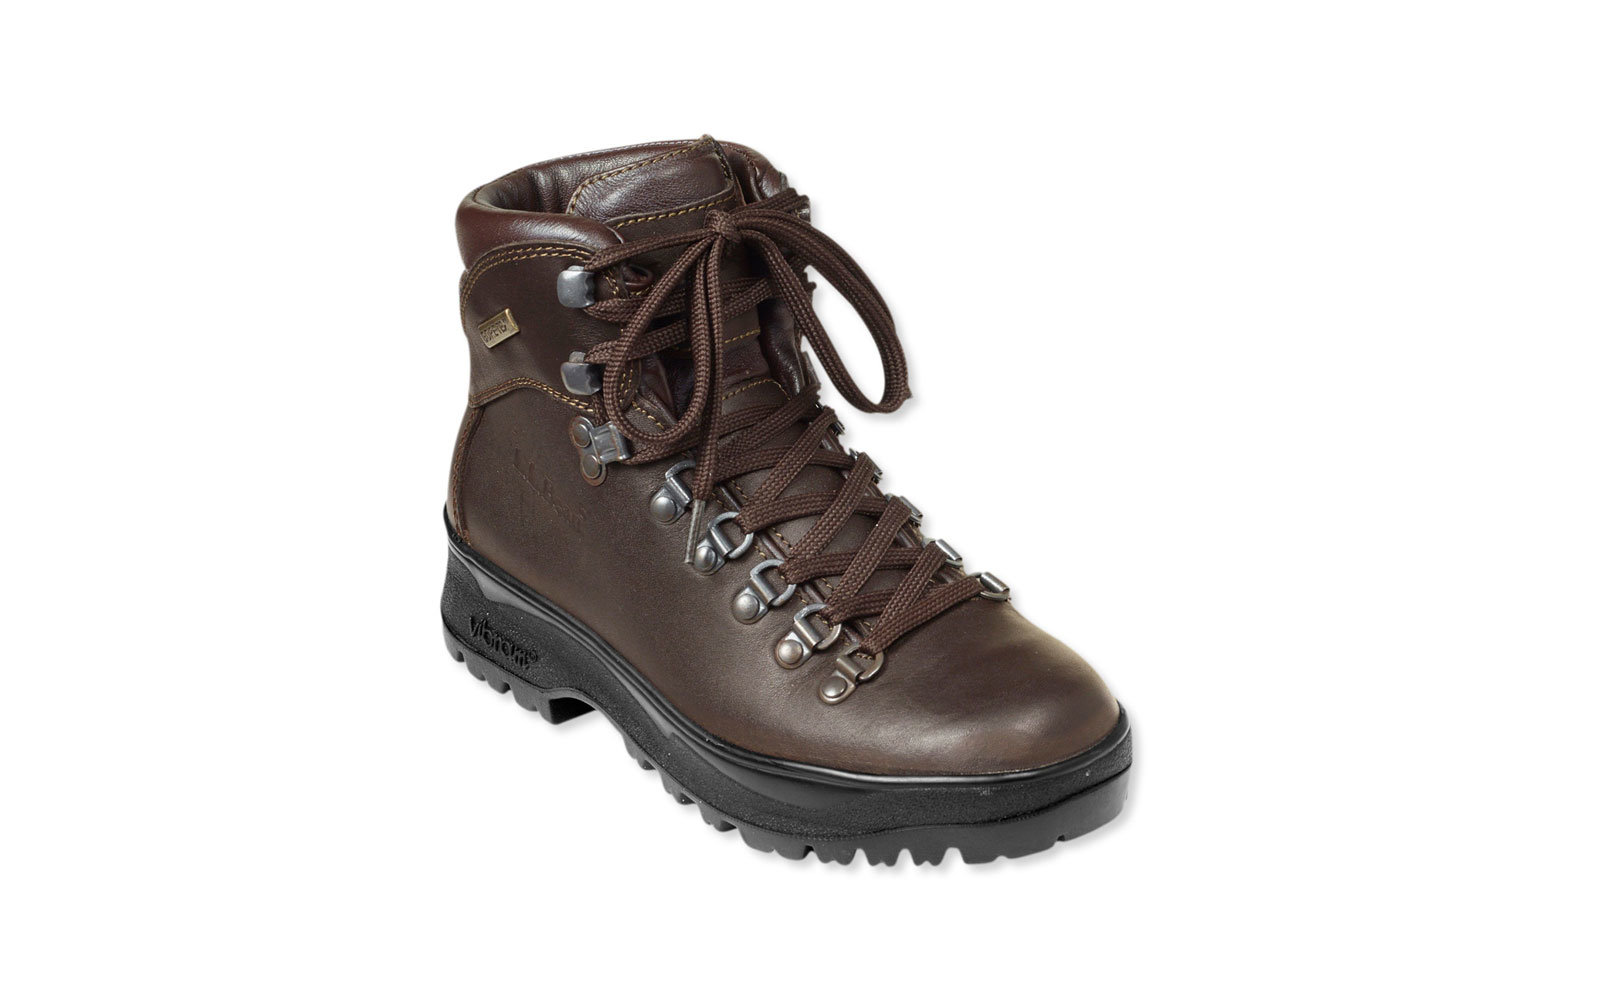 llbean cute leather hiking boot